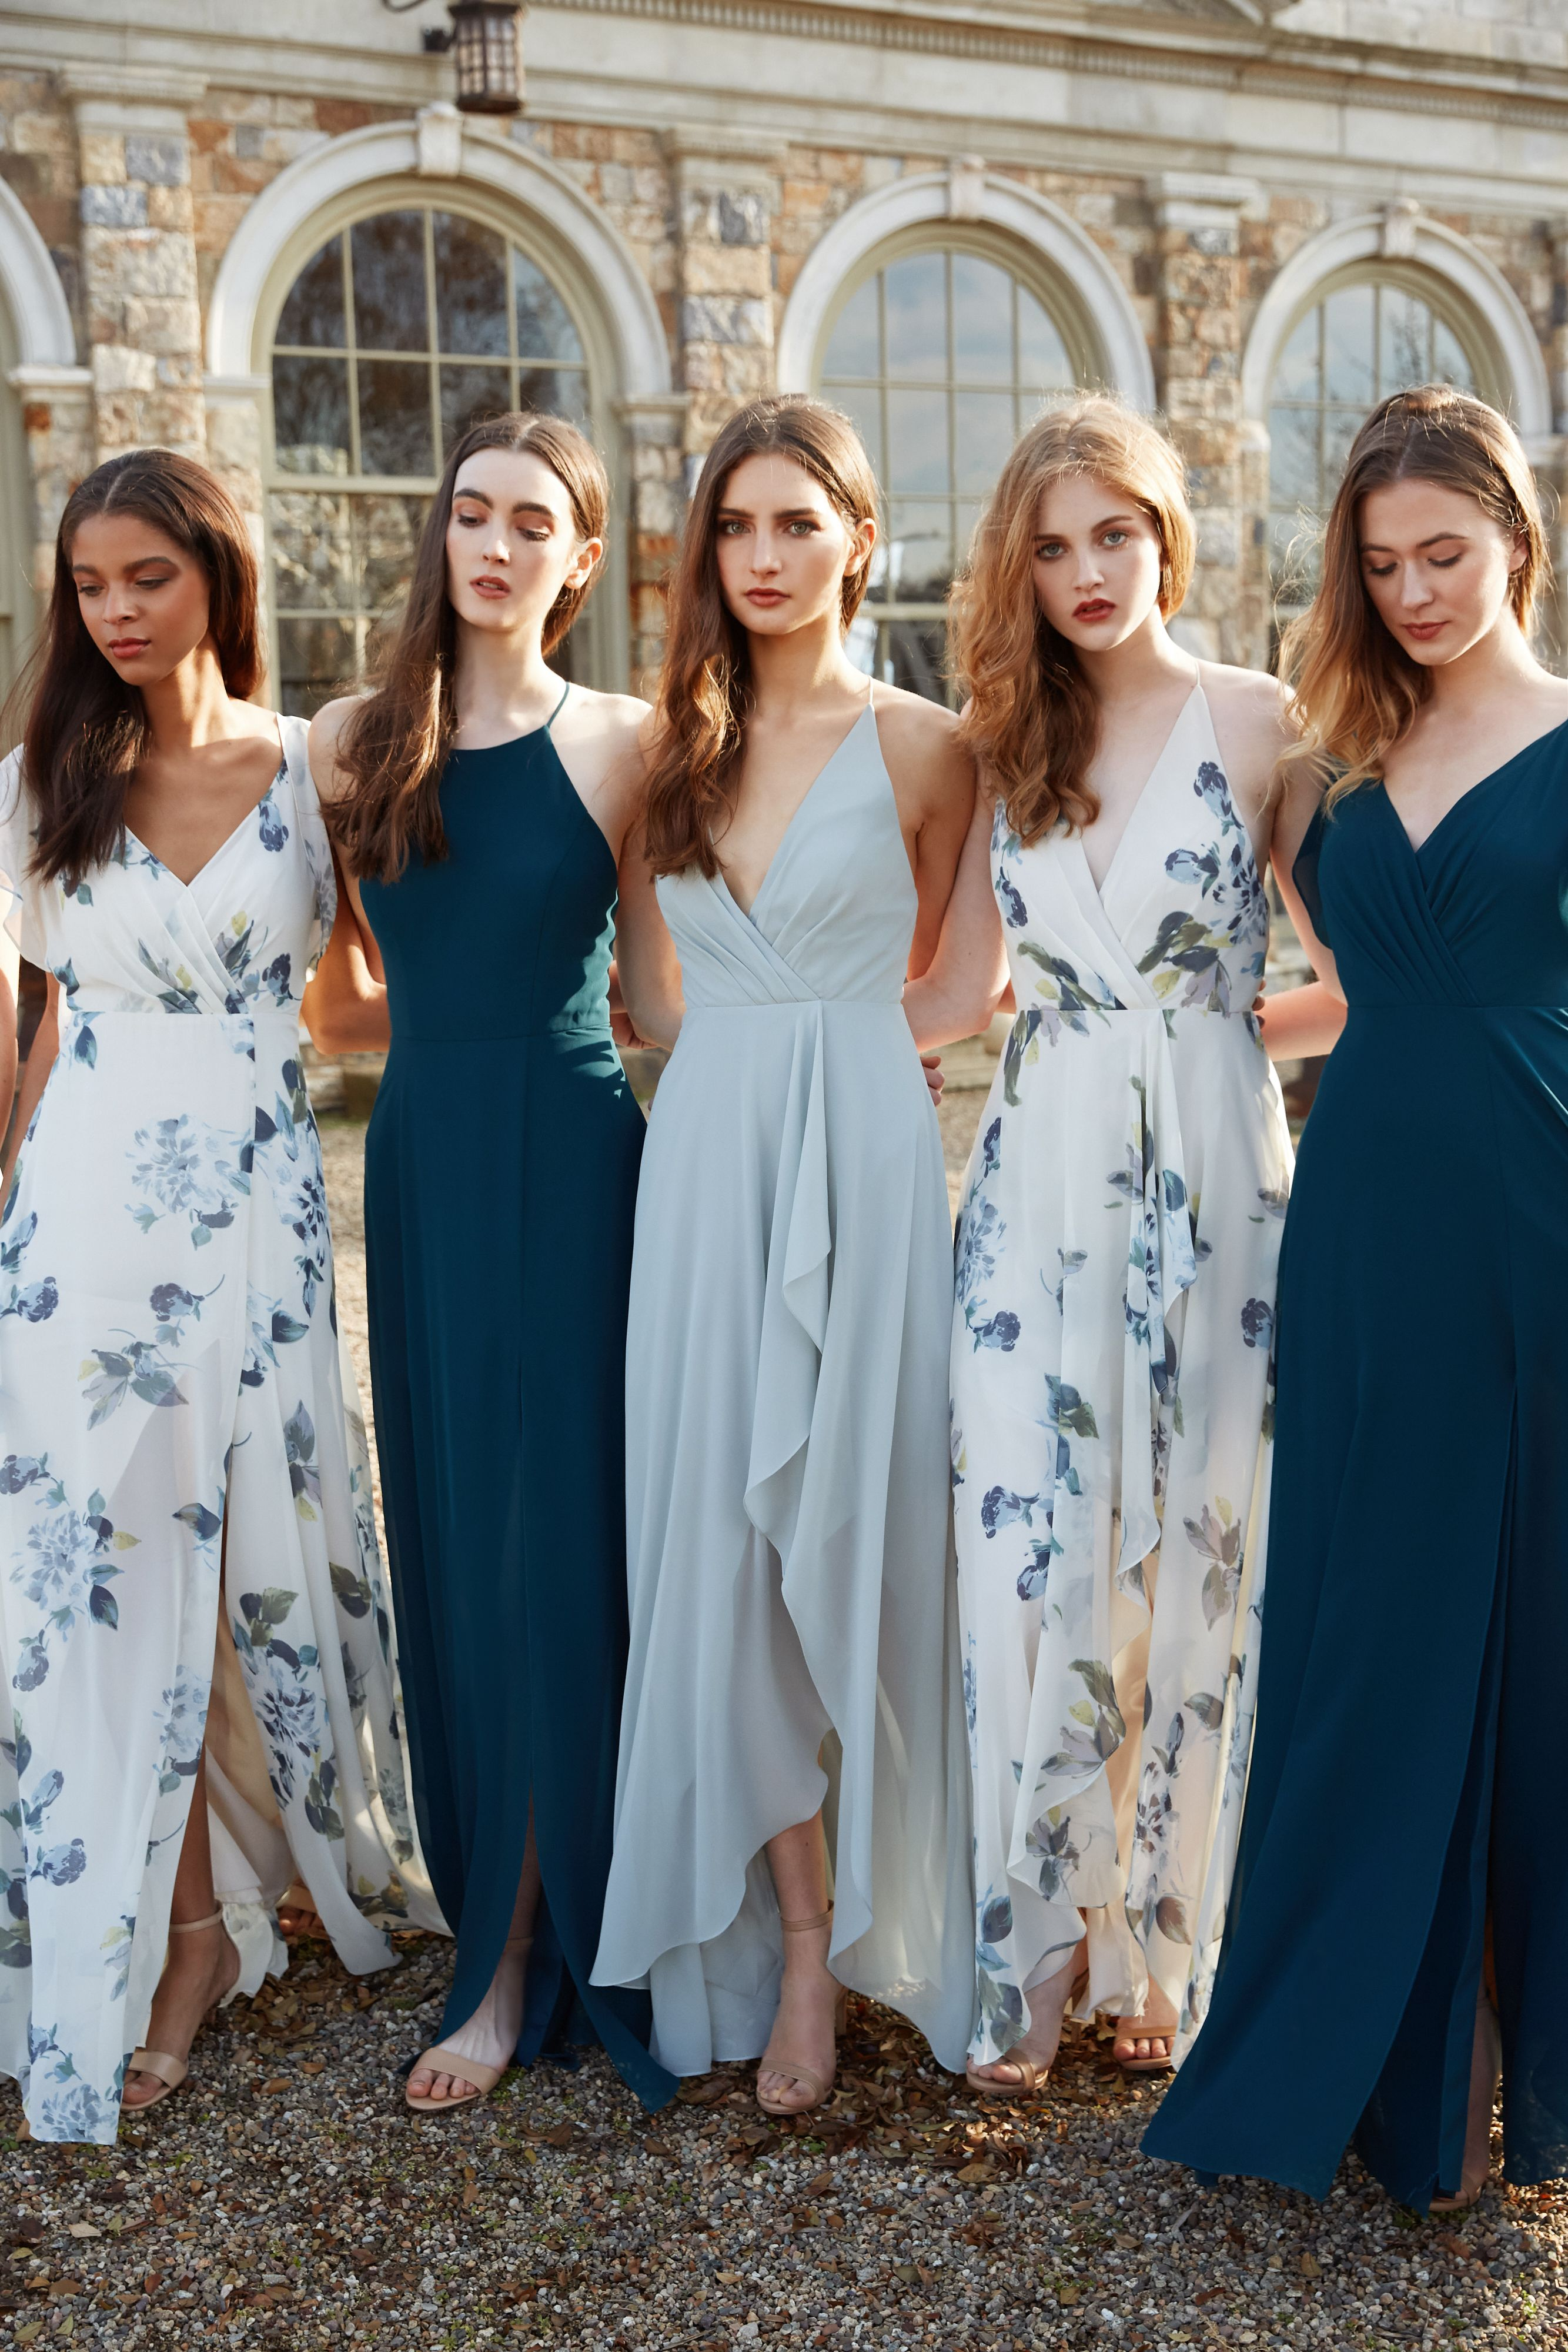 Mix And Match Your Bridesmaids Dresses For A Unique Bridal Party Bridesmaids Dresses A Printed Bridesmaid Dresses Floral Bridesmaid Dresses Bridesmaid Dresses